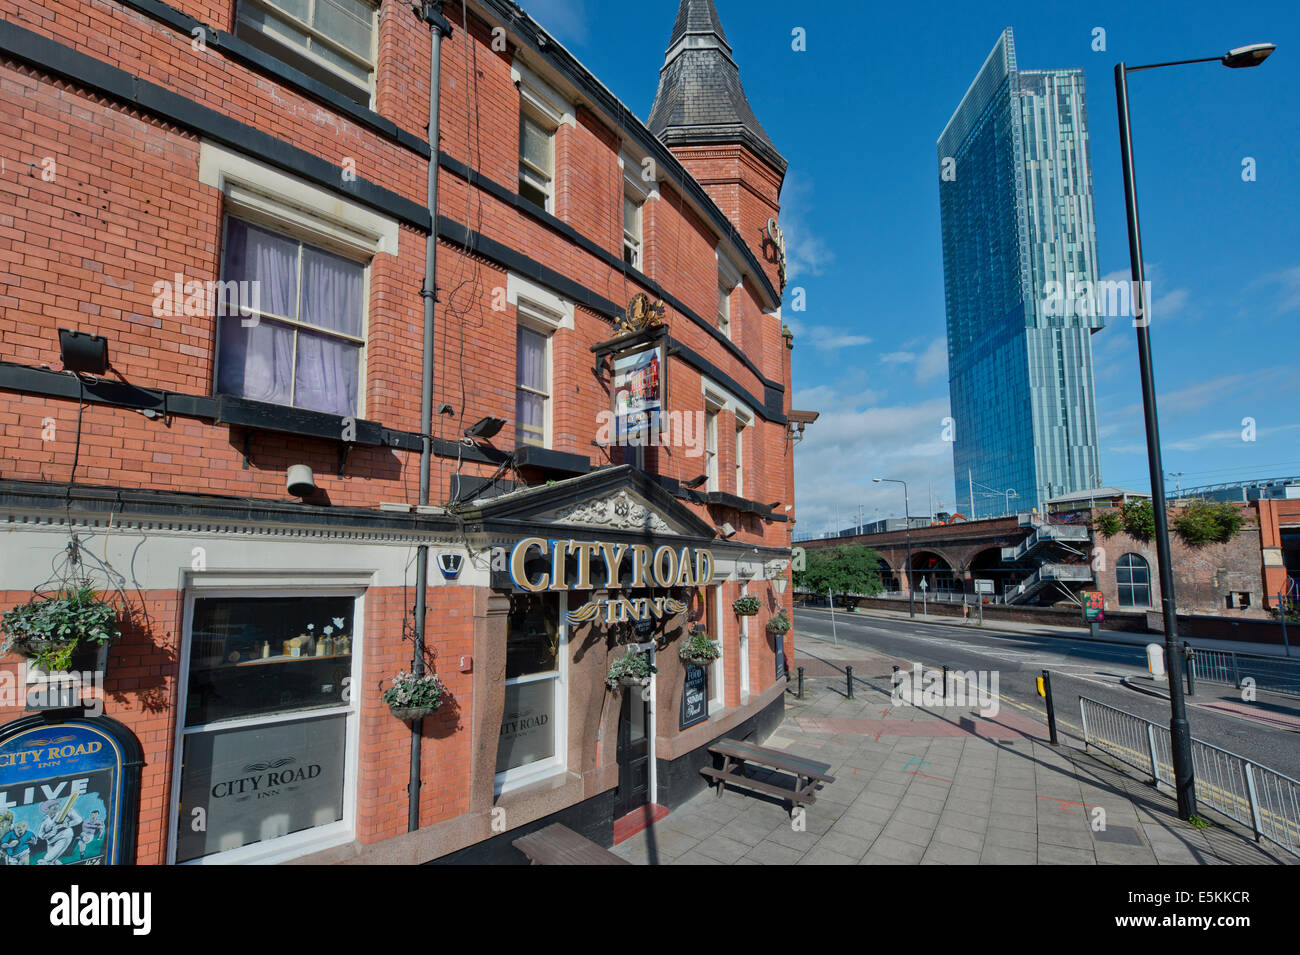 The City Road Inn traditional English city pub, located on Albion Street, Manchester, UK. Stock Photo